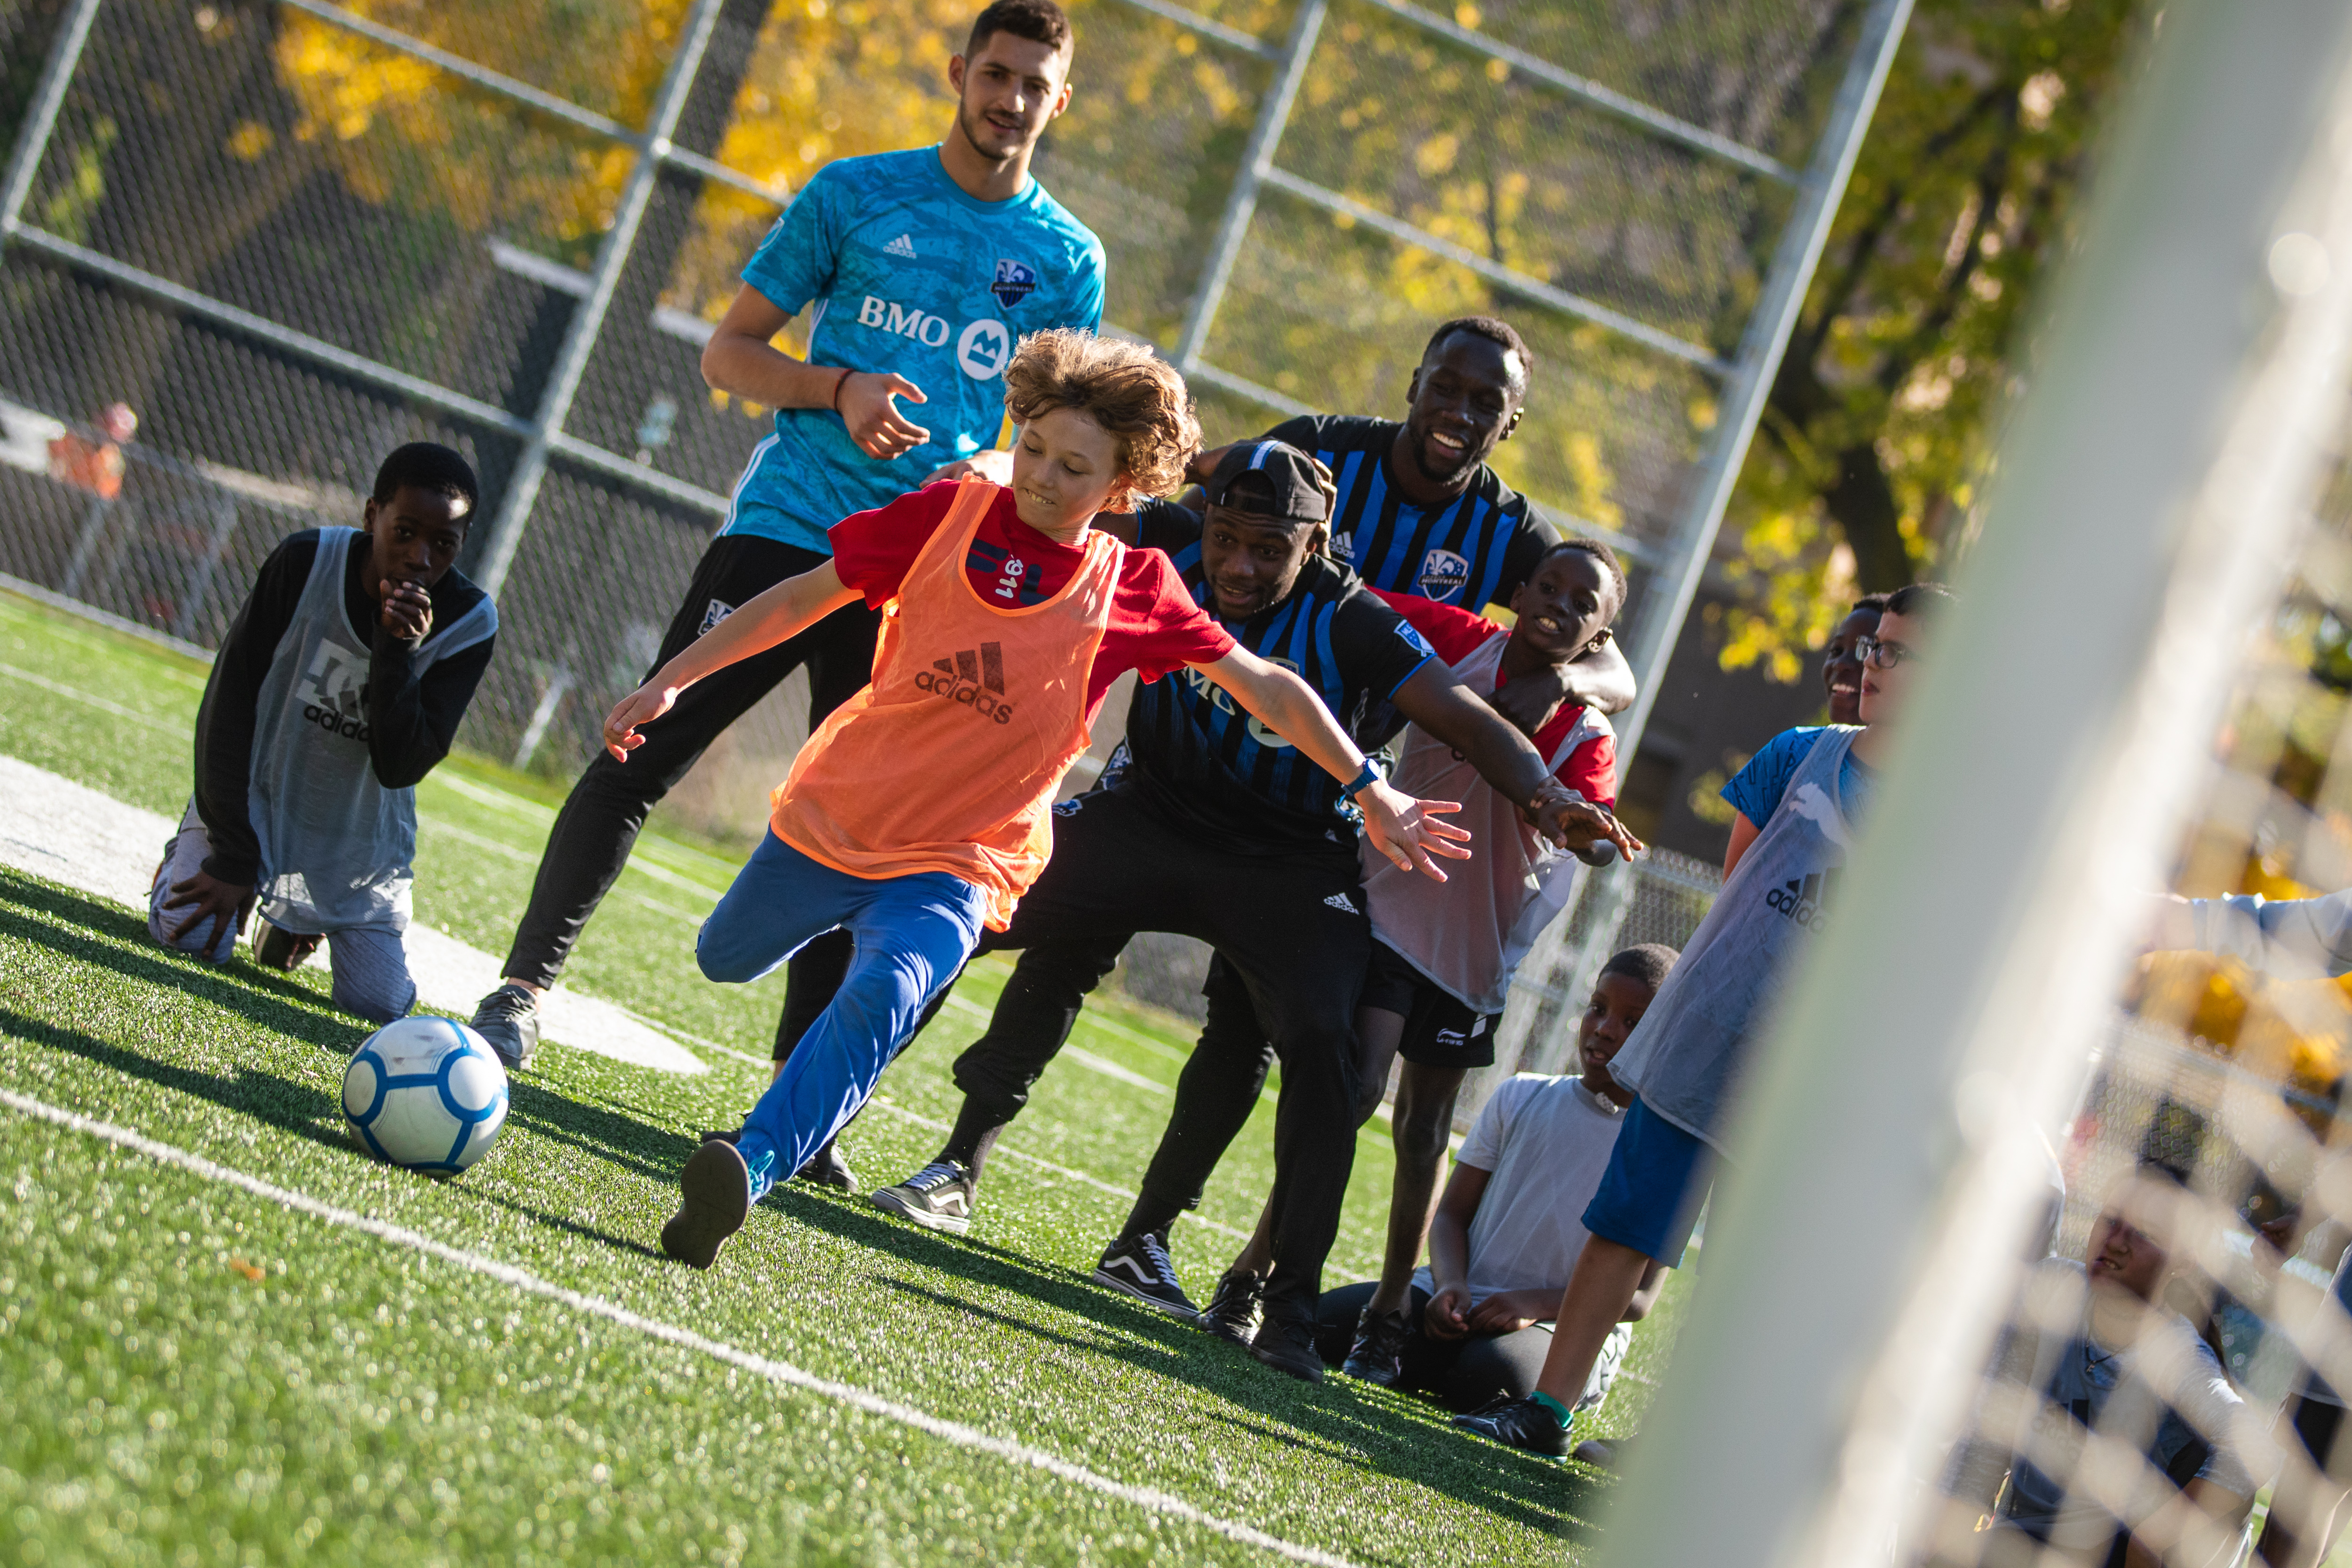 The Montreal Impact Foundation and BMO donate 1,000 soccer balls